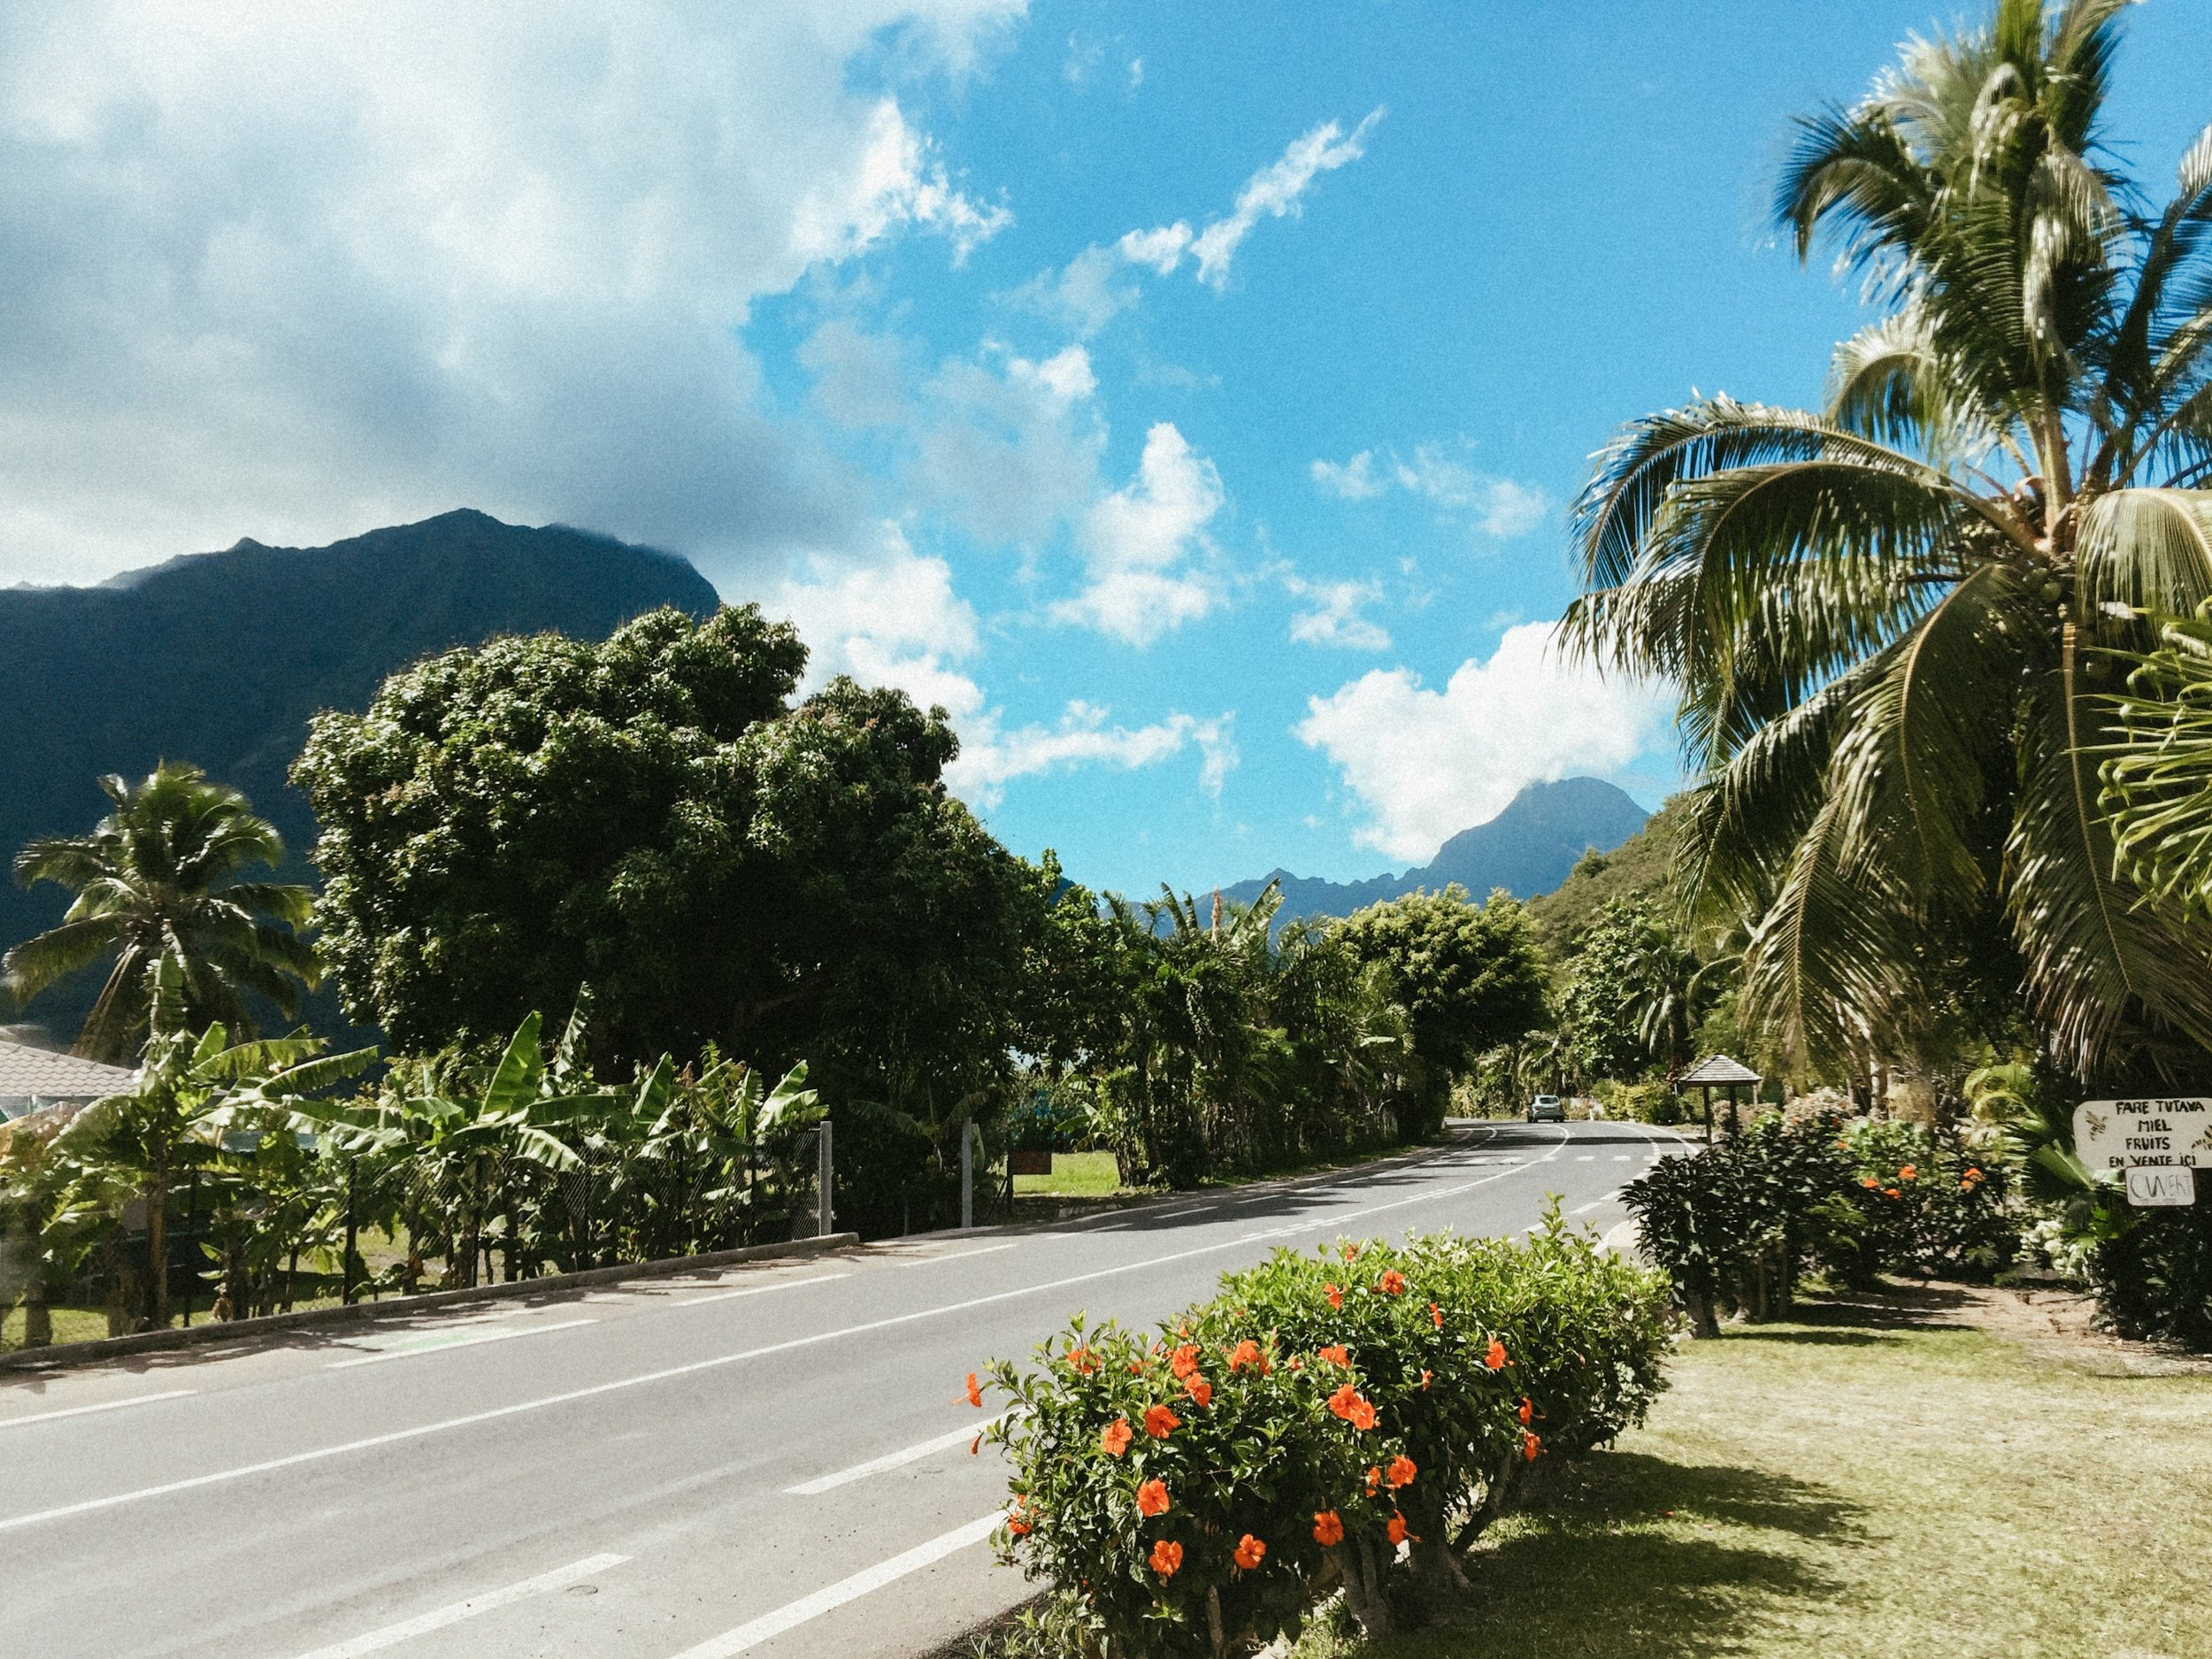 Flower-lined roads led us to the Hilton Mo'orea Lagoon Resort and Spa.